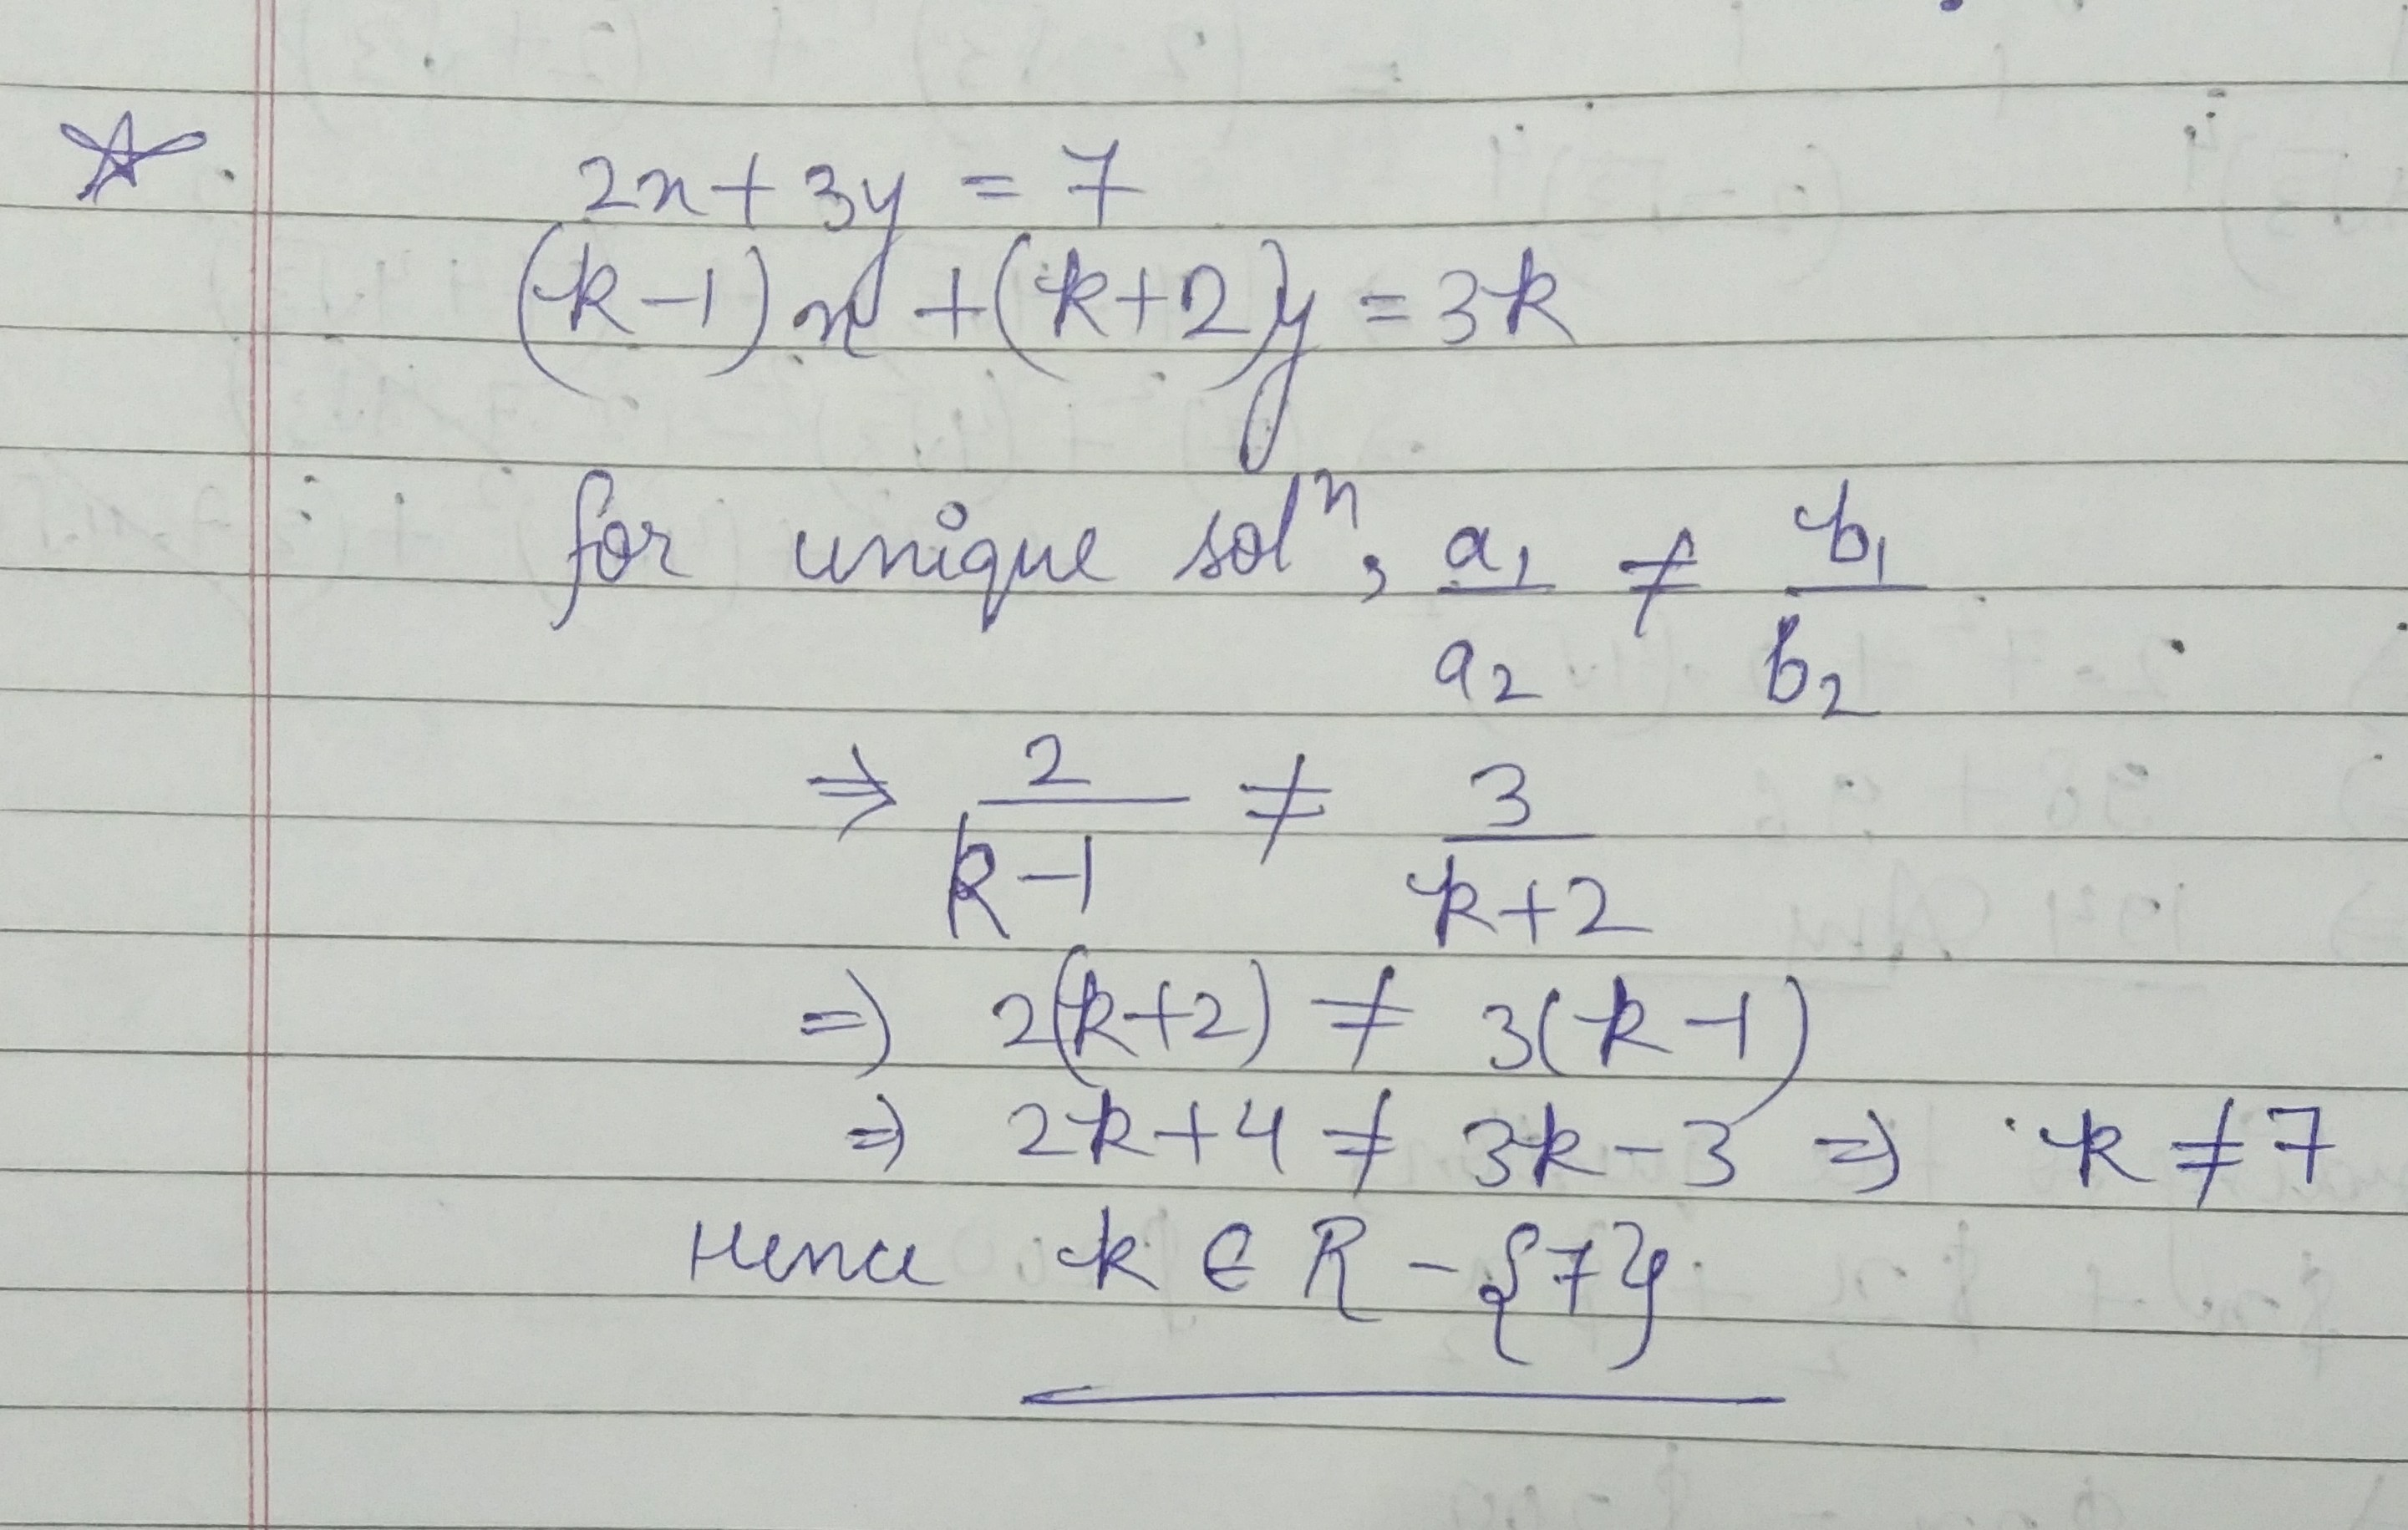 find the value of k for which the following pair of linear